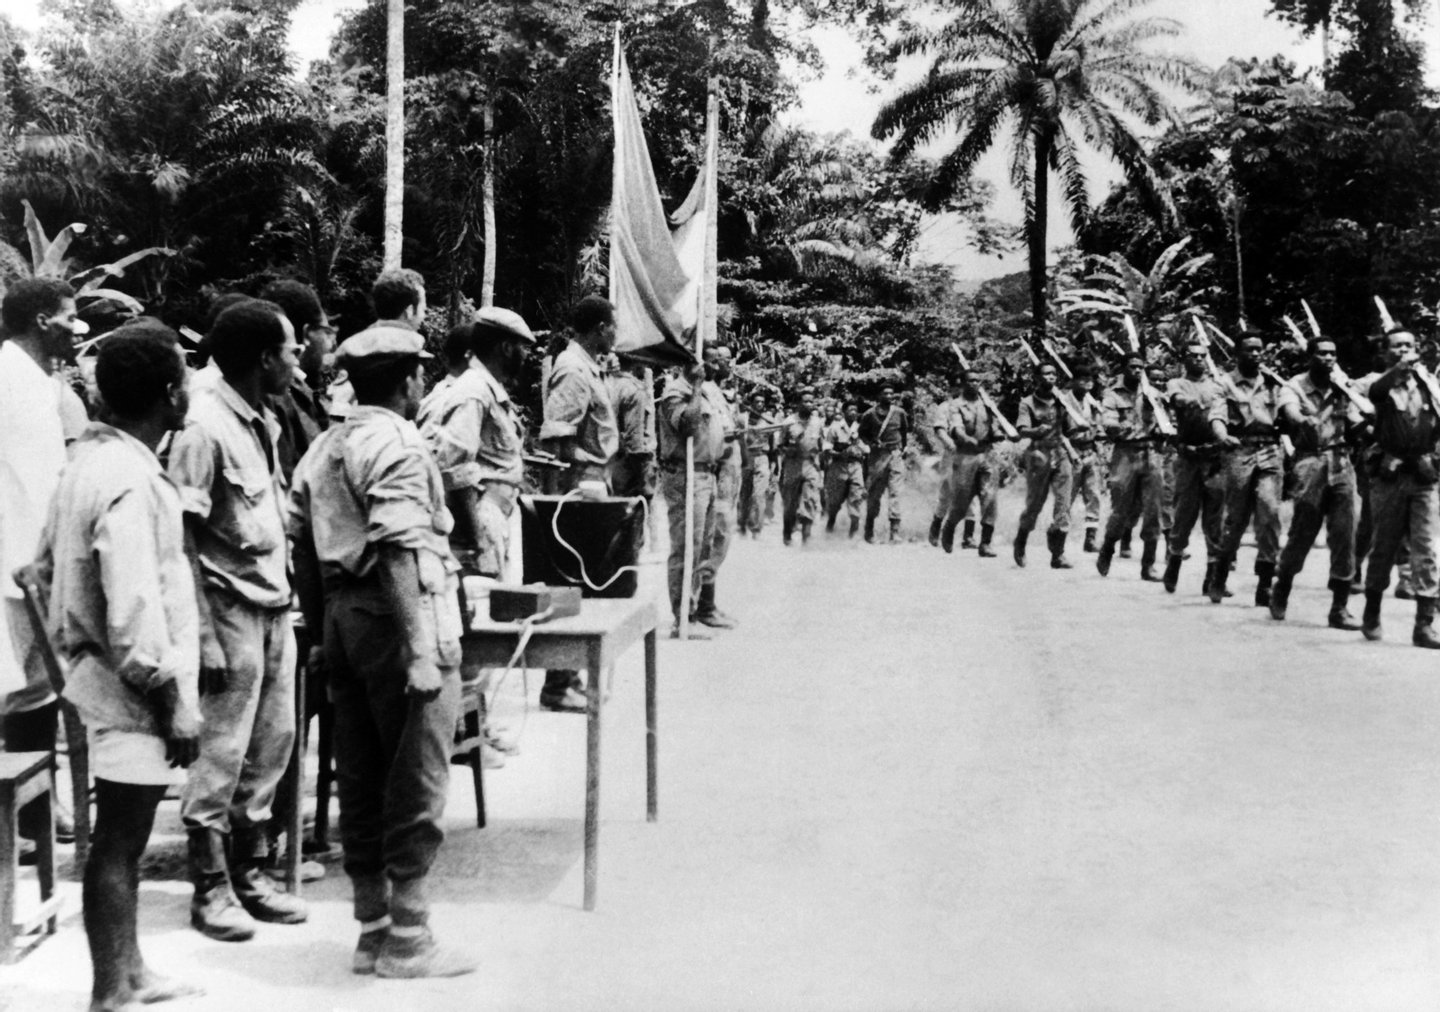 Rebels parade in 1967 in an unlocated place of Angola during the Angolan War of Independence (1961–1975). (Photo credit should read STF/AFP/Getty Images)